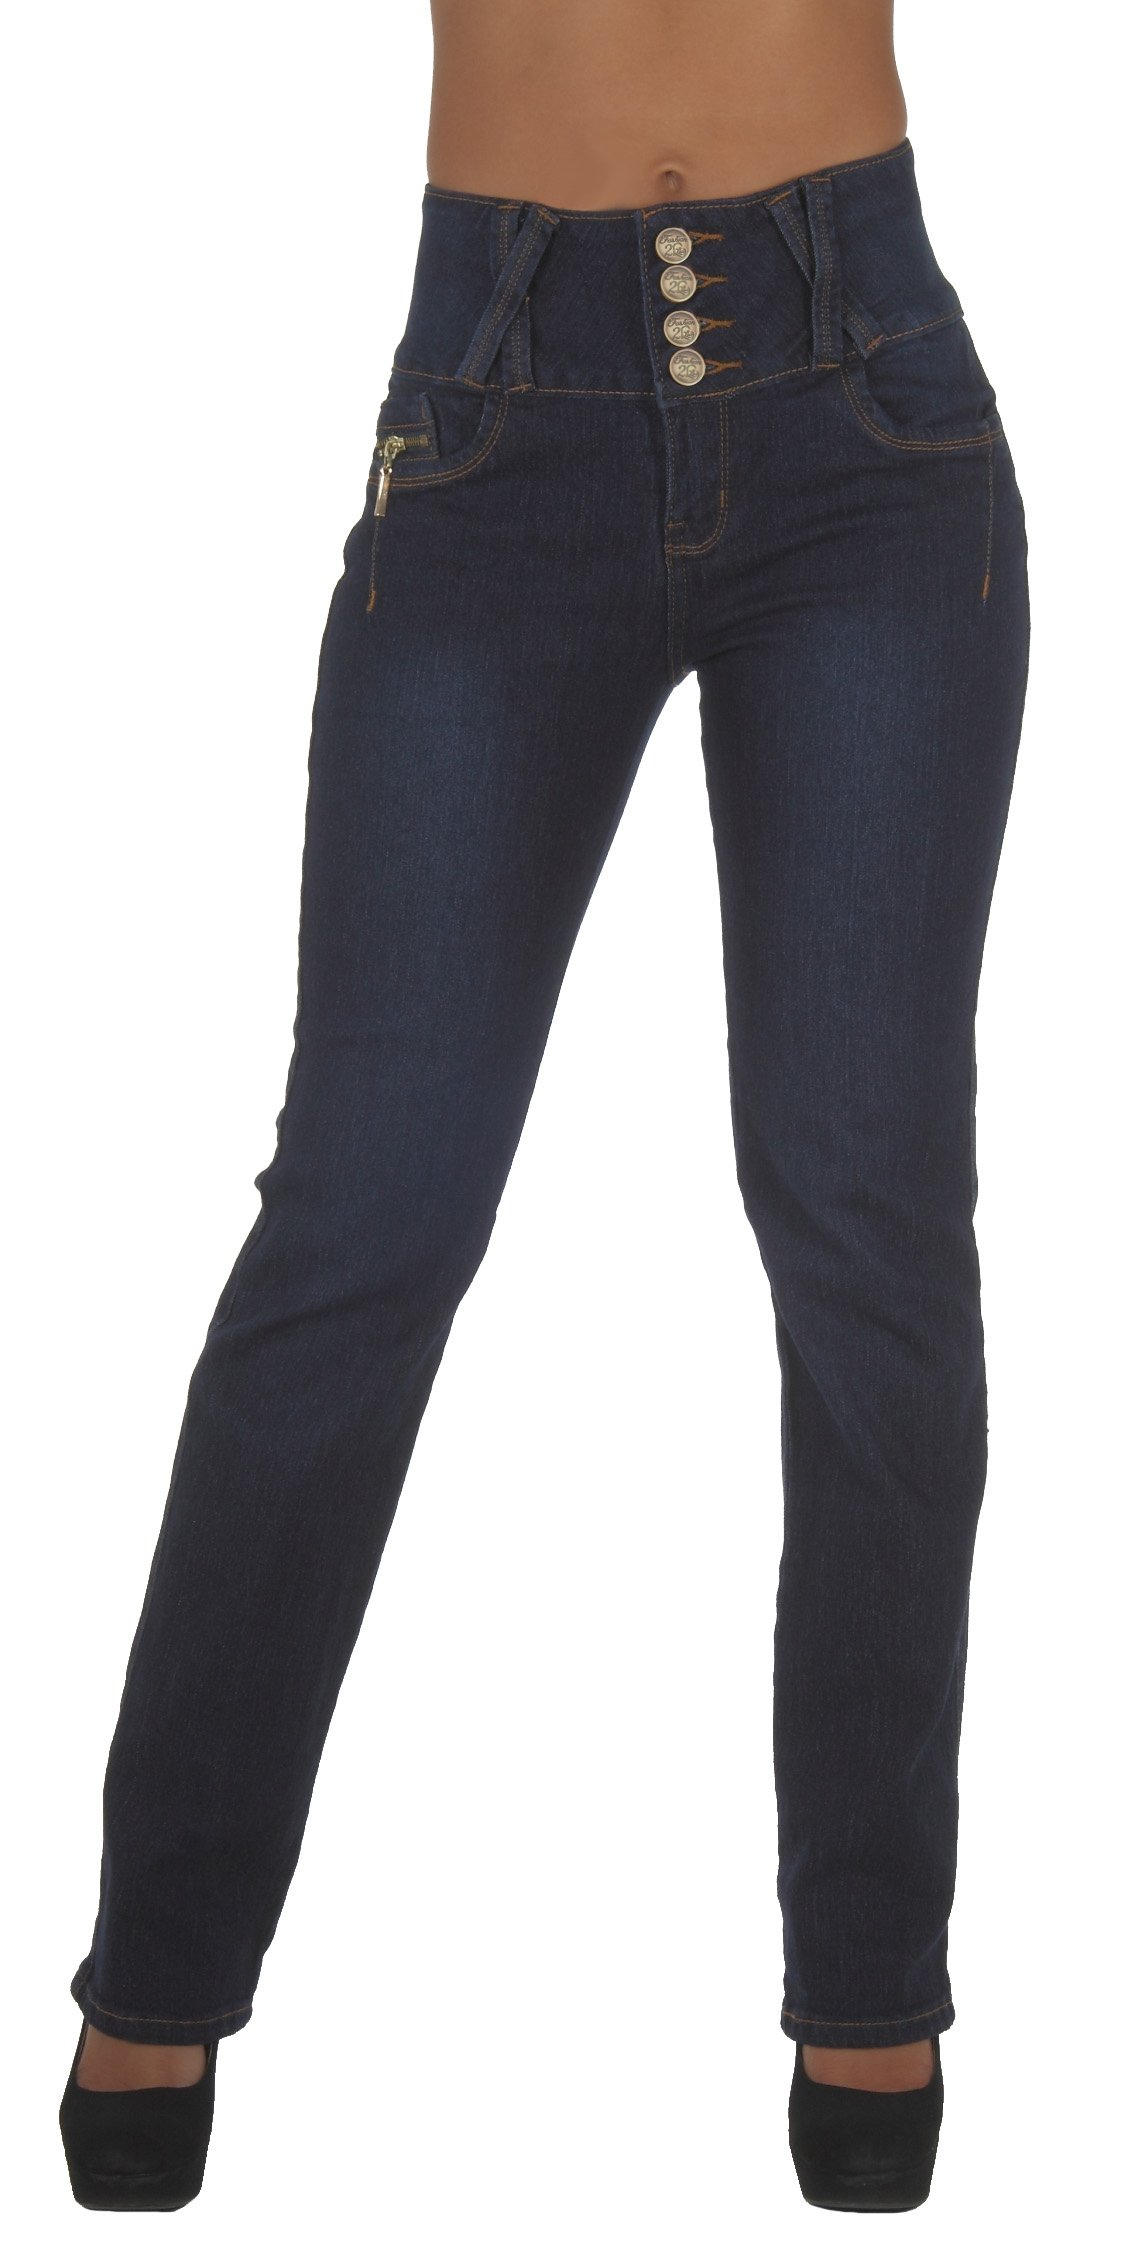 Style N545-1A-BT– Colombian Design, Butt Lift, High Waist, Boot Leg Jeans in Dark Blue Size 13